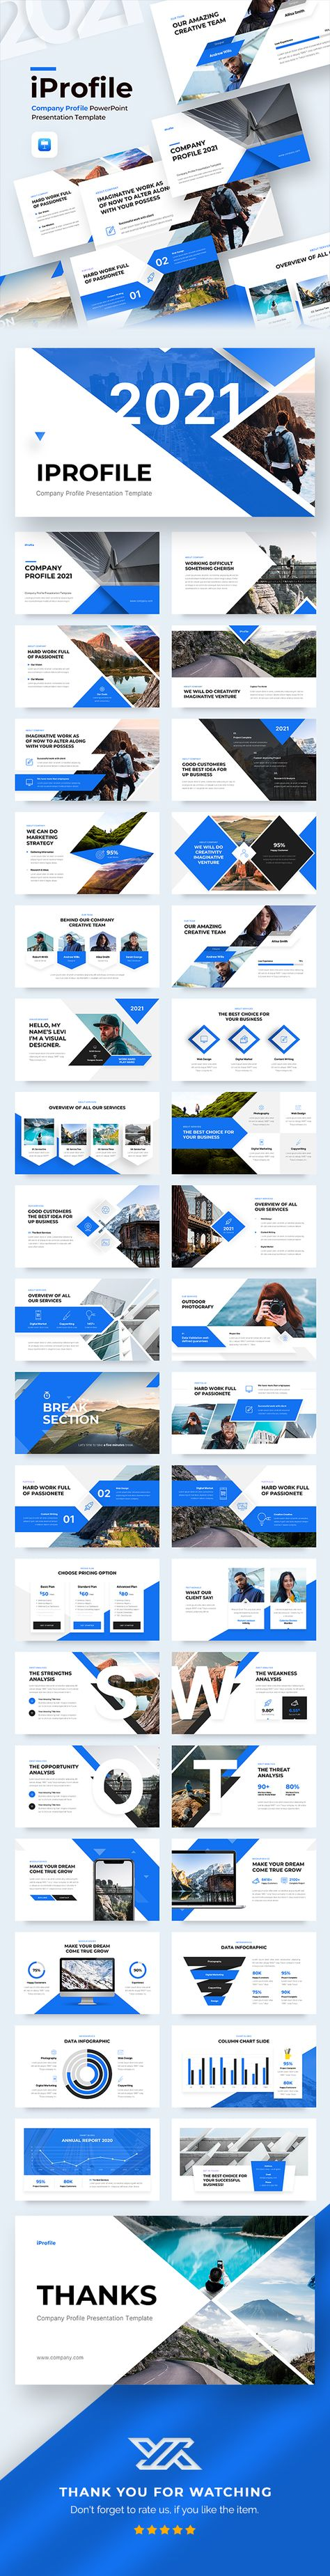 Iprofile - Company Profile Keynote Presentation Template